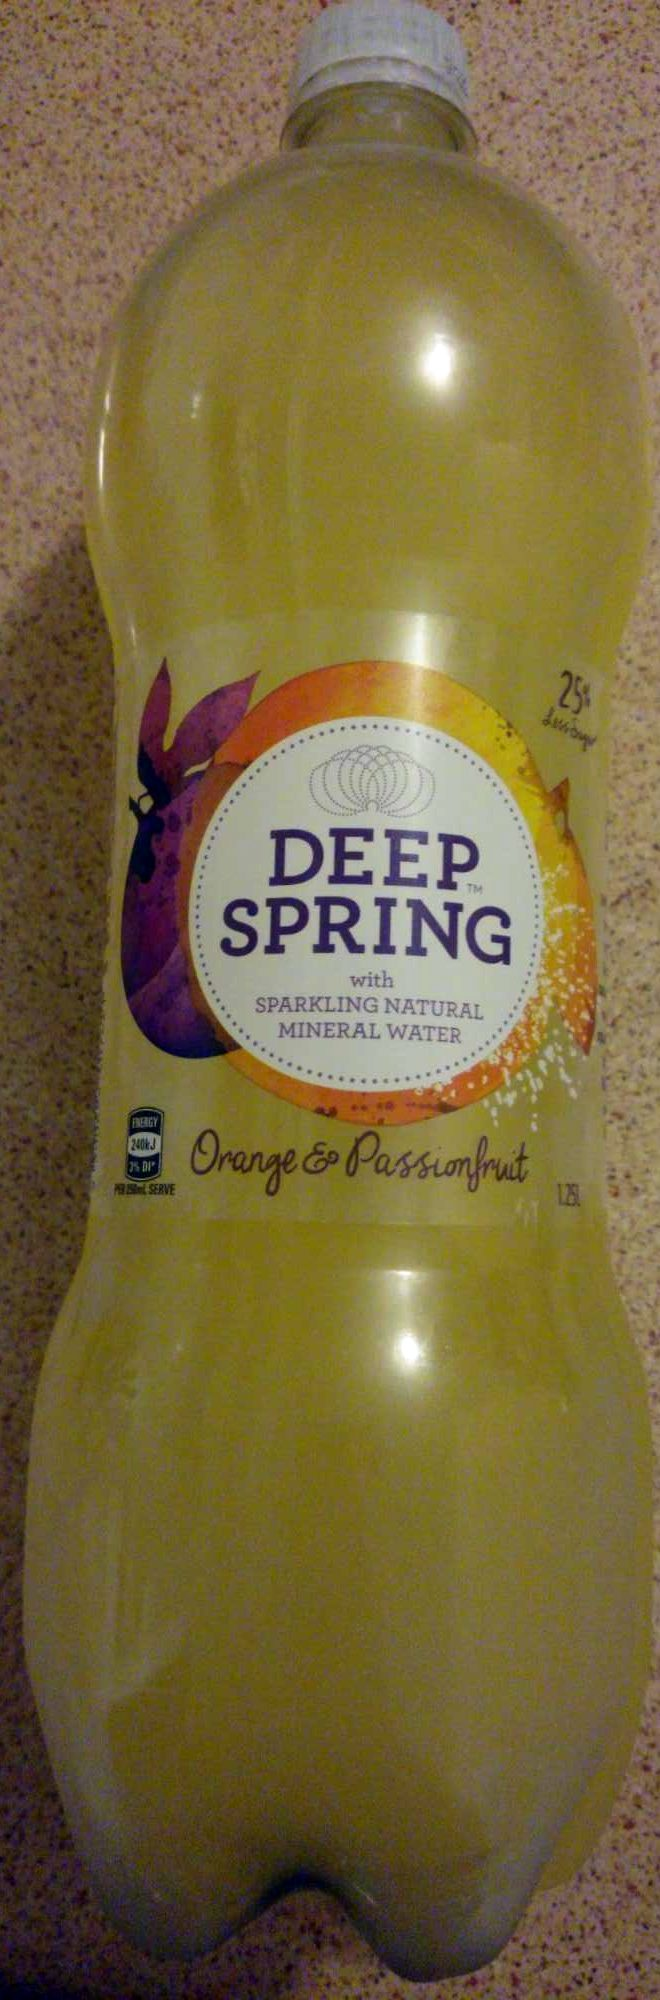 Deep Spring Orange & Passionfruit - Product